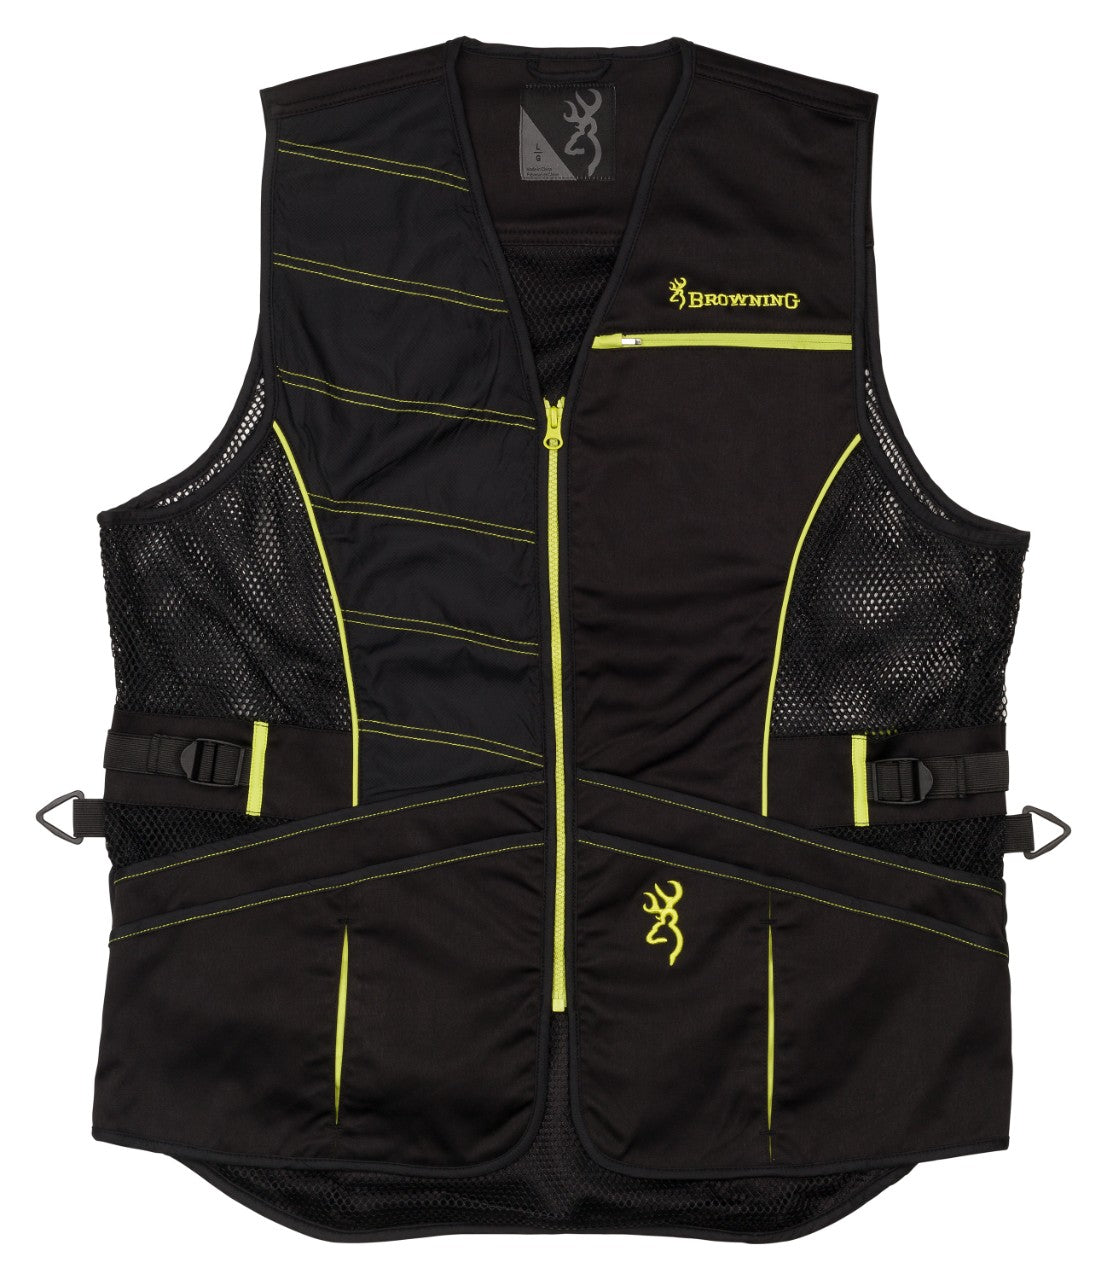 VST,ACE,BLACK/VOLT,M